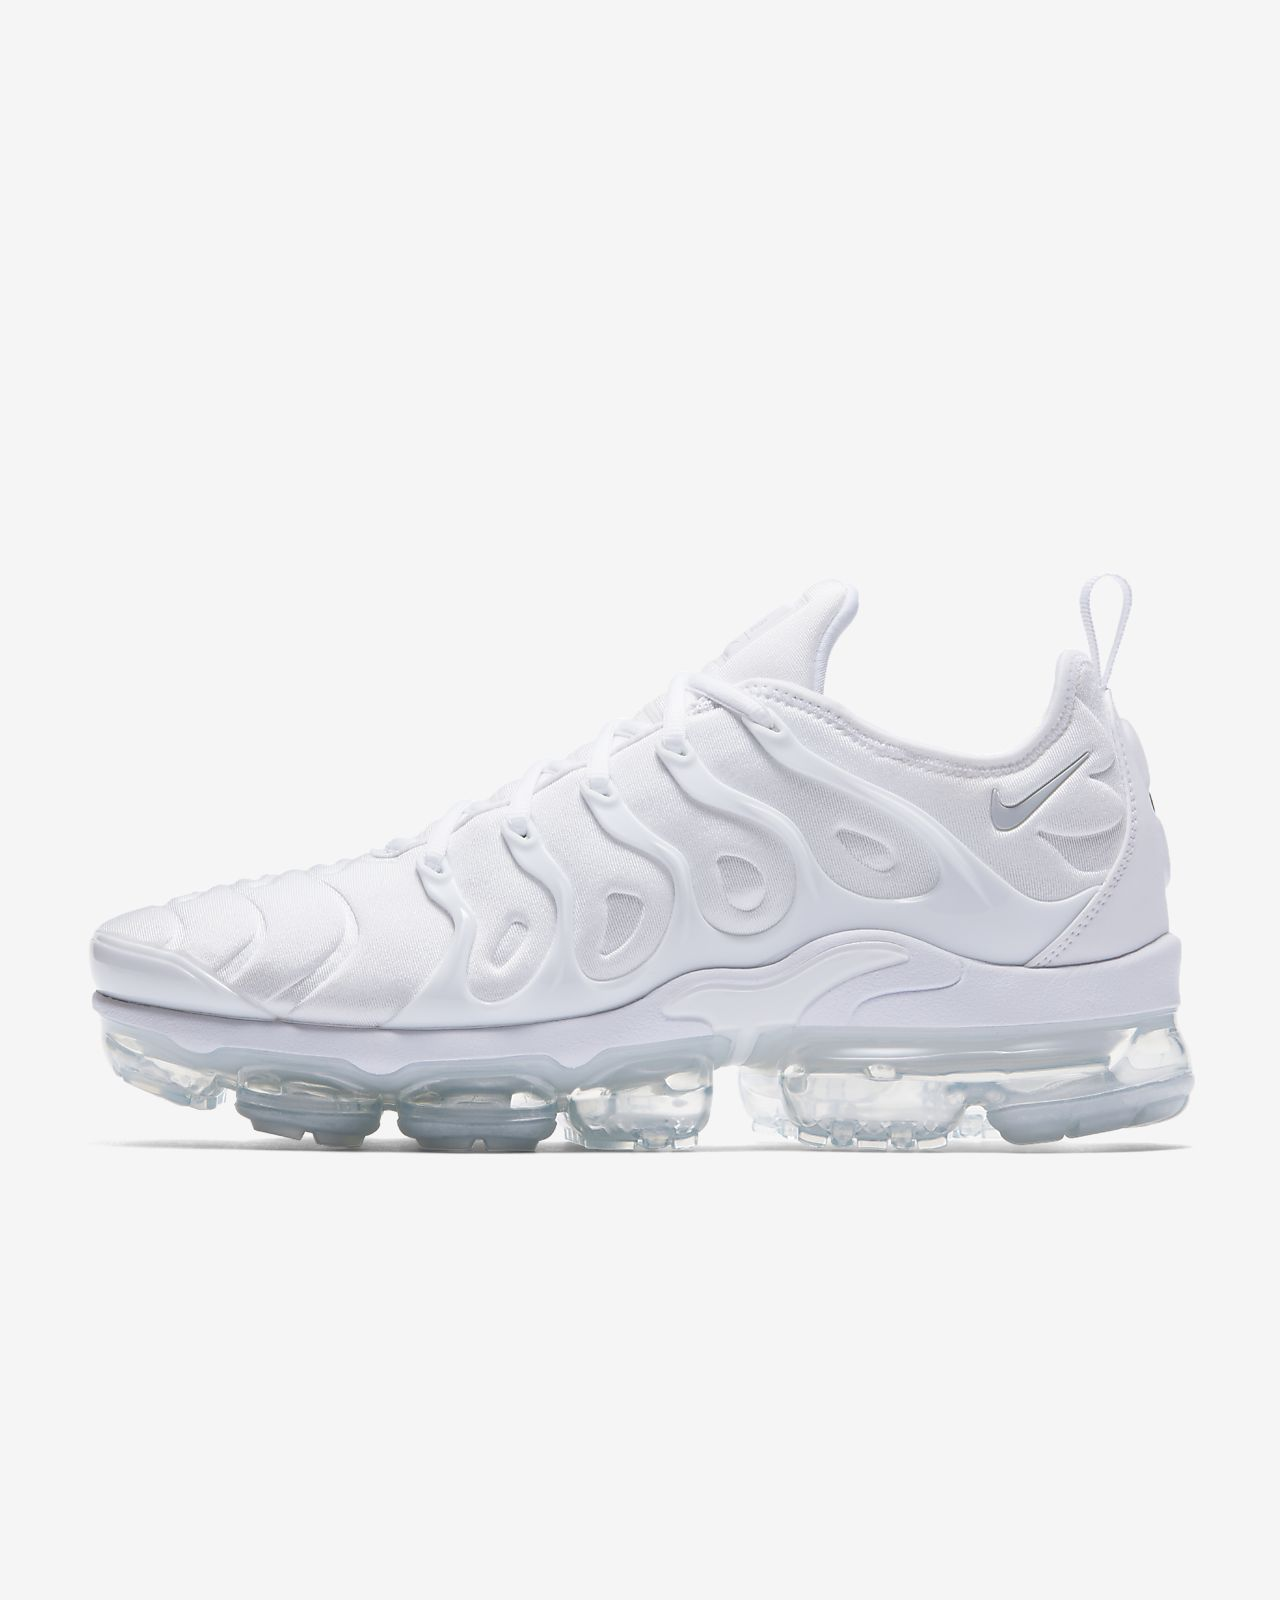 760a0dbb6d3 Nike Air VaporMax Plus Men s Shoe. Nike.com DK